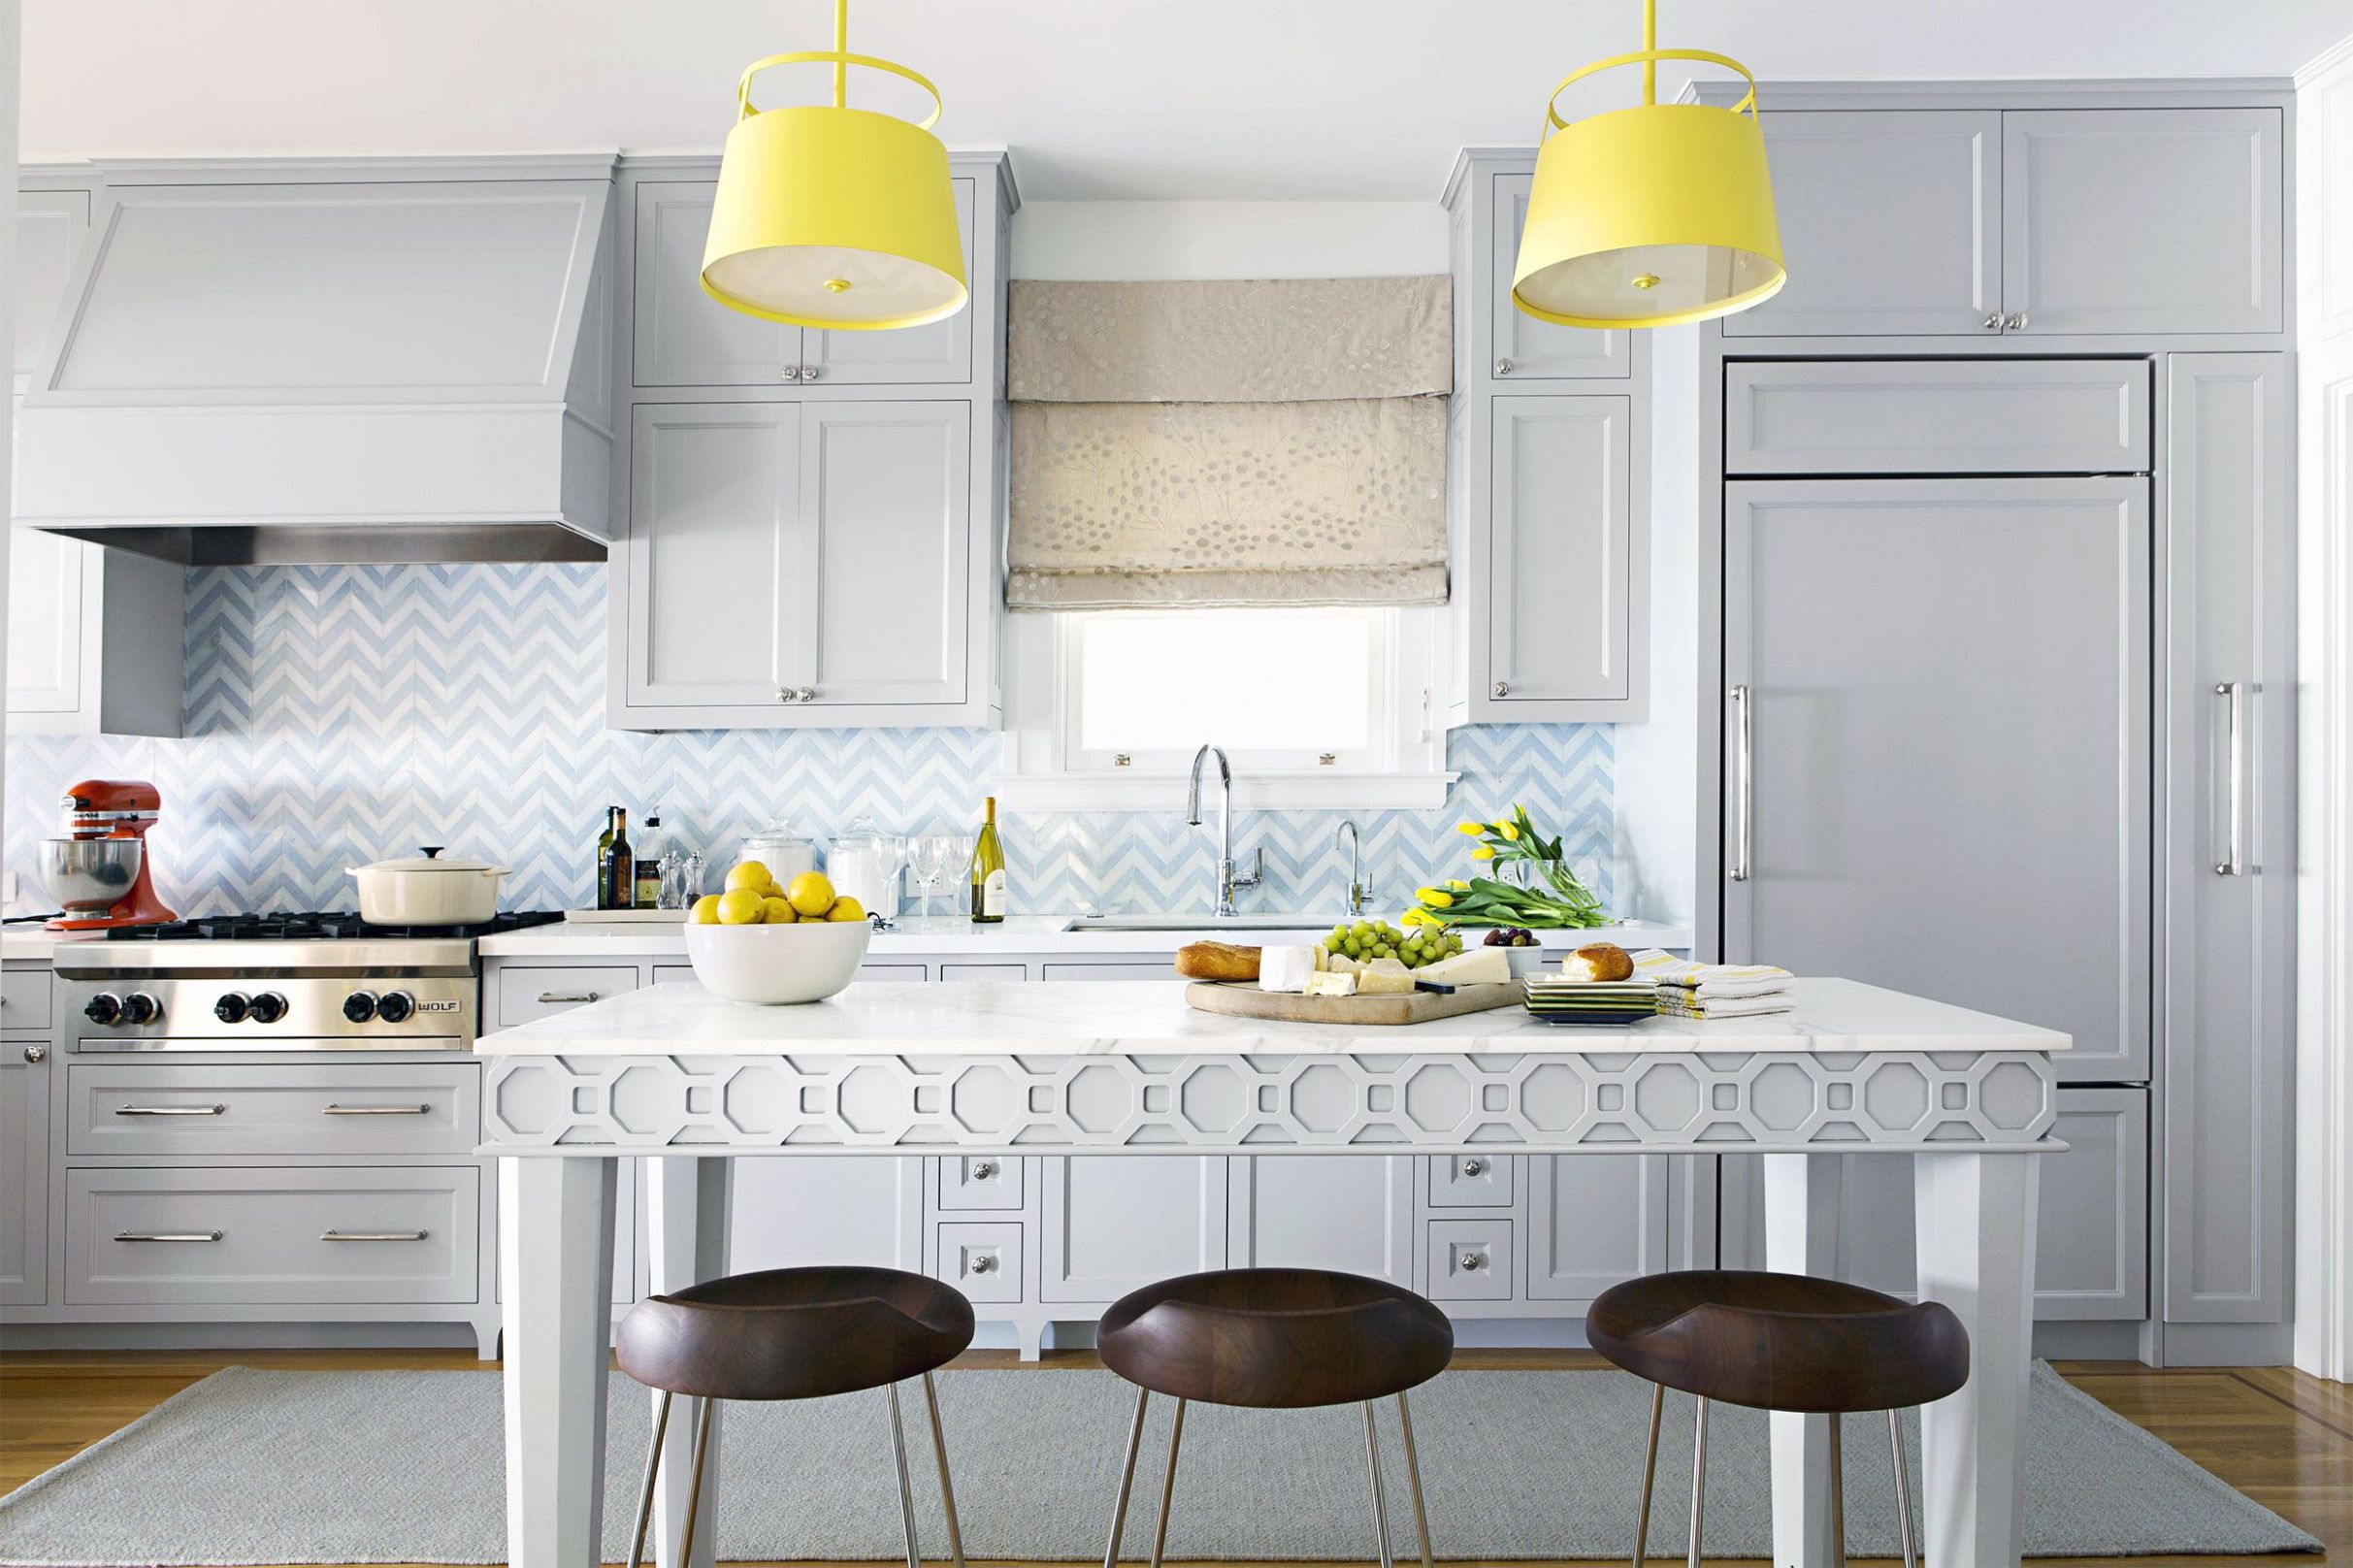 11 Stylish Modern Kitchen Ideas - Contemporary Kitchen Remodels - kitchen ideas you can use